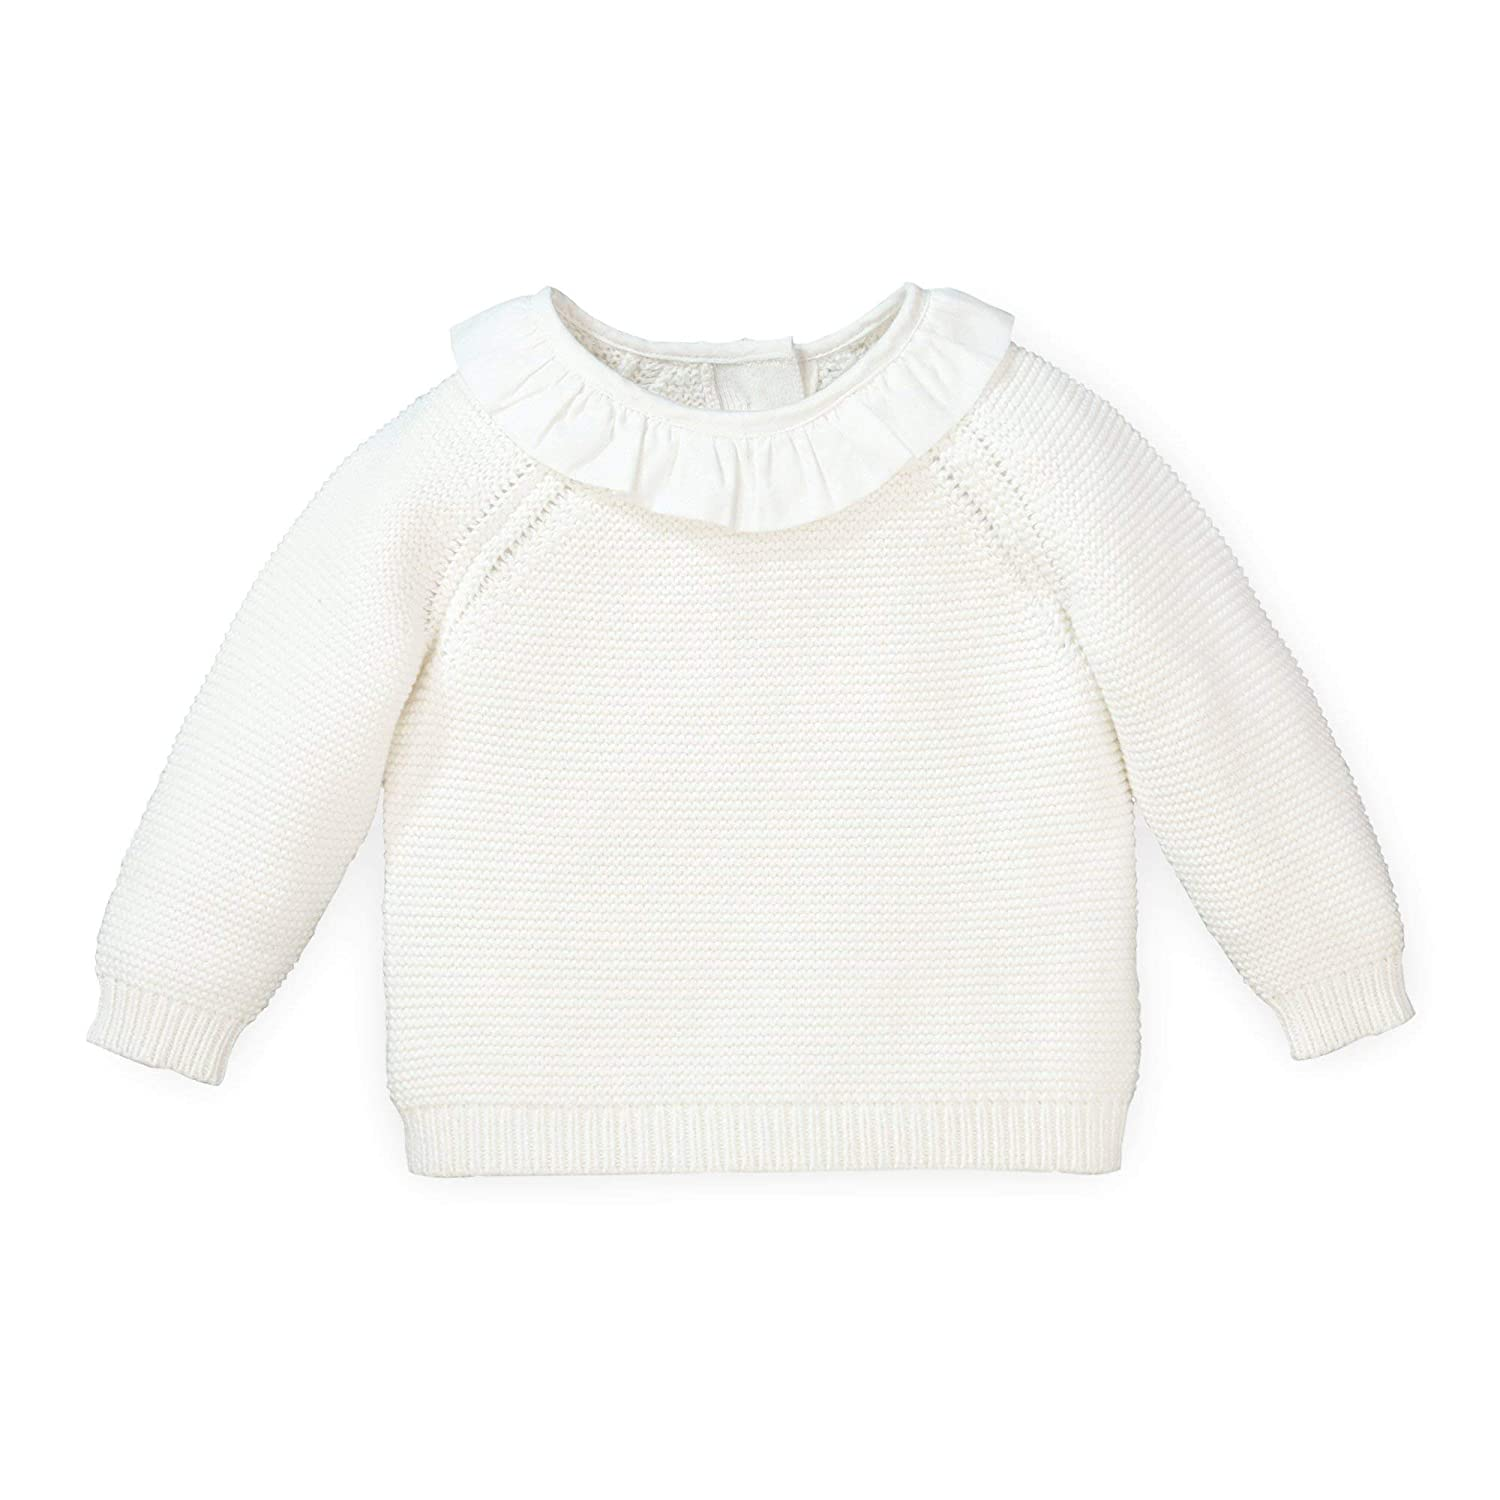 Bloomer and Bonnet 3-Piece Set Hope /& Henry Layette Long Sleeve Sweater